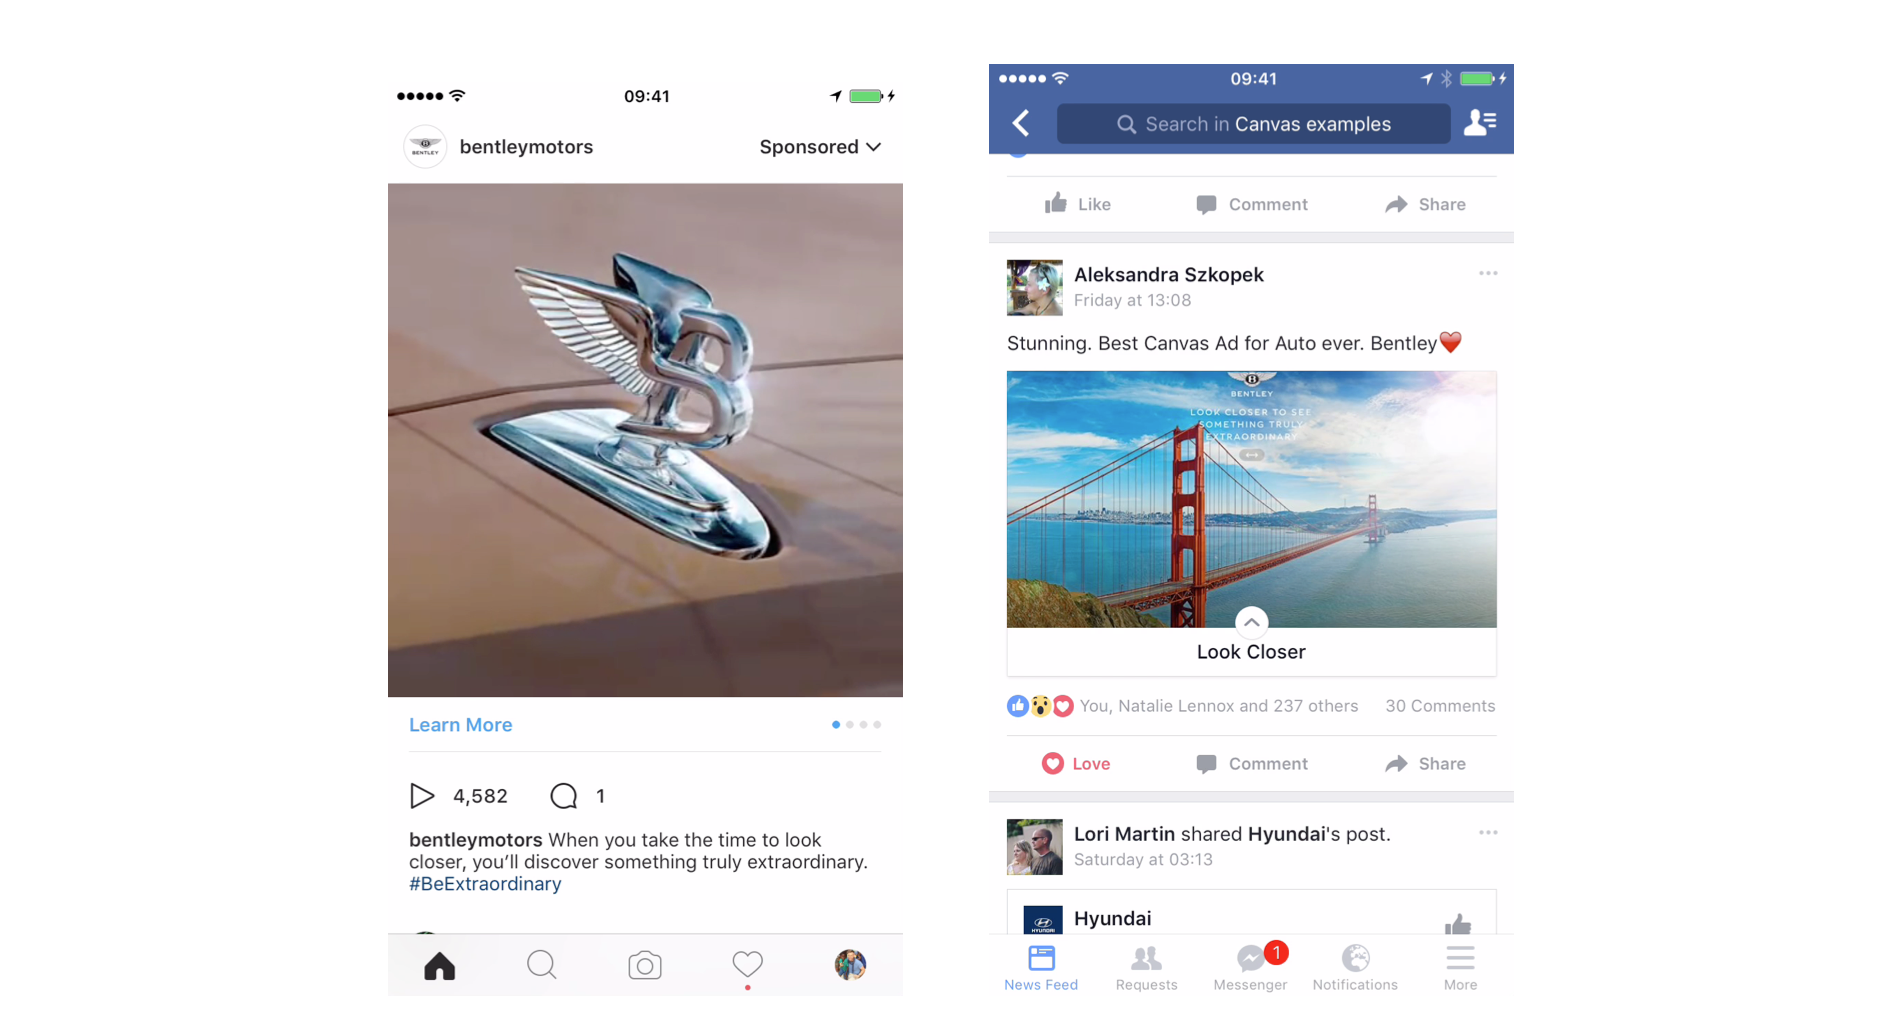 Instagram and Facebook content promoting Bentley's 53 billion pixel image of its Mulsanne model